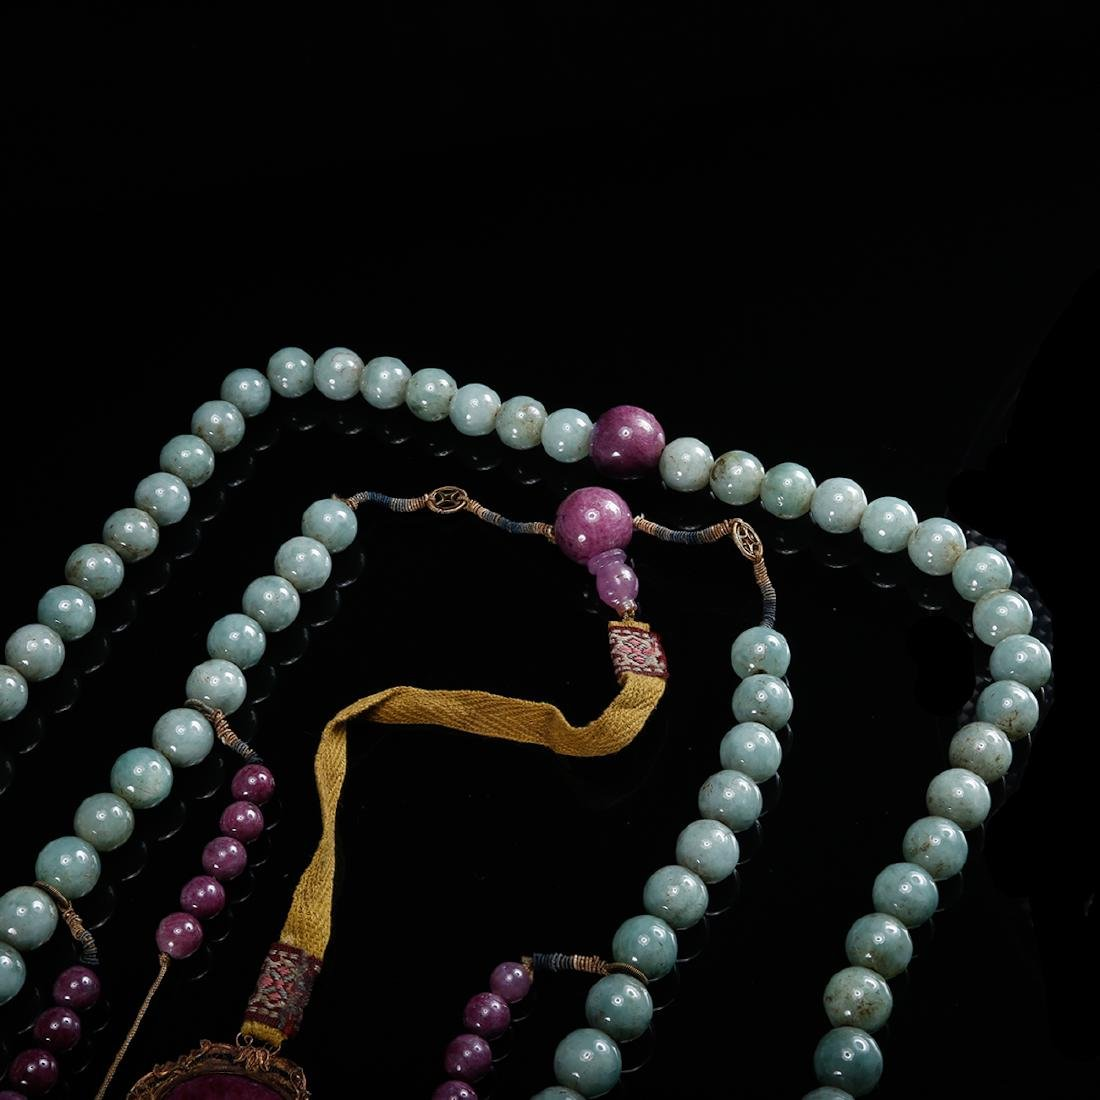 CHINESE JADEITE COURT BEADS NECKLACE, QING - 6